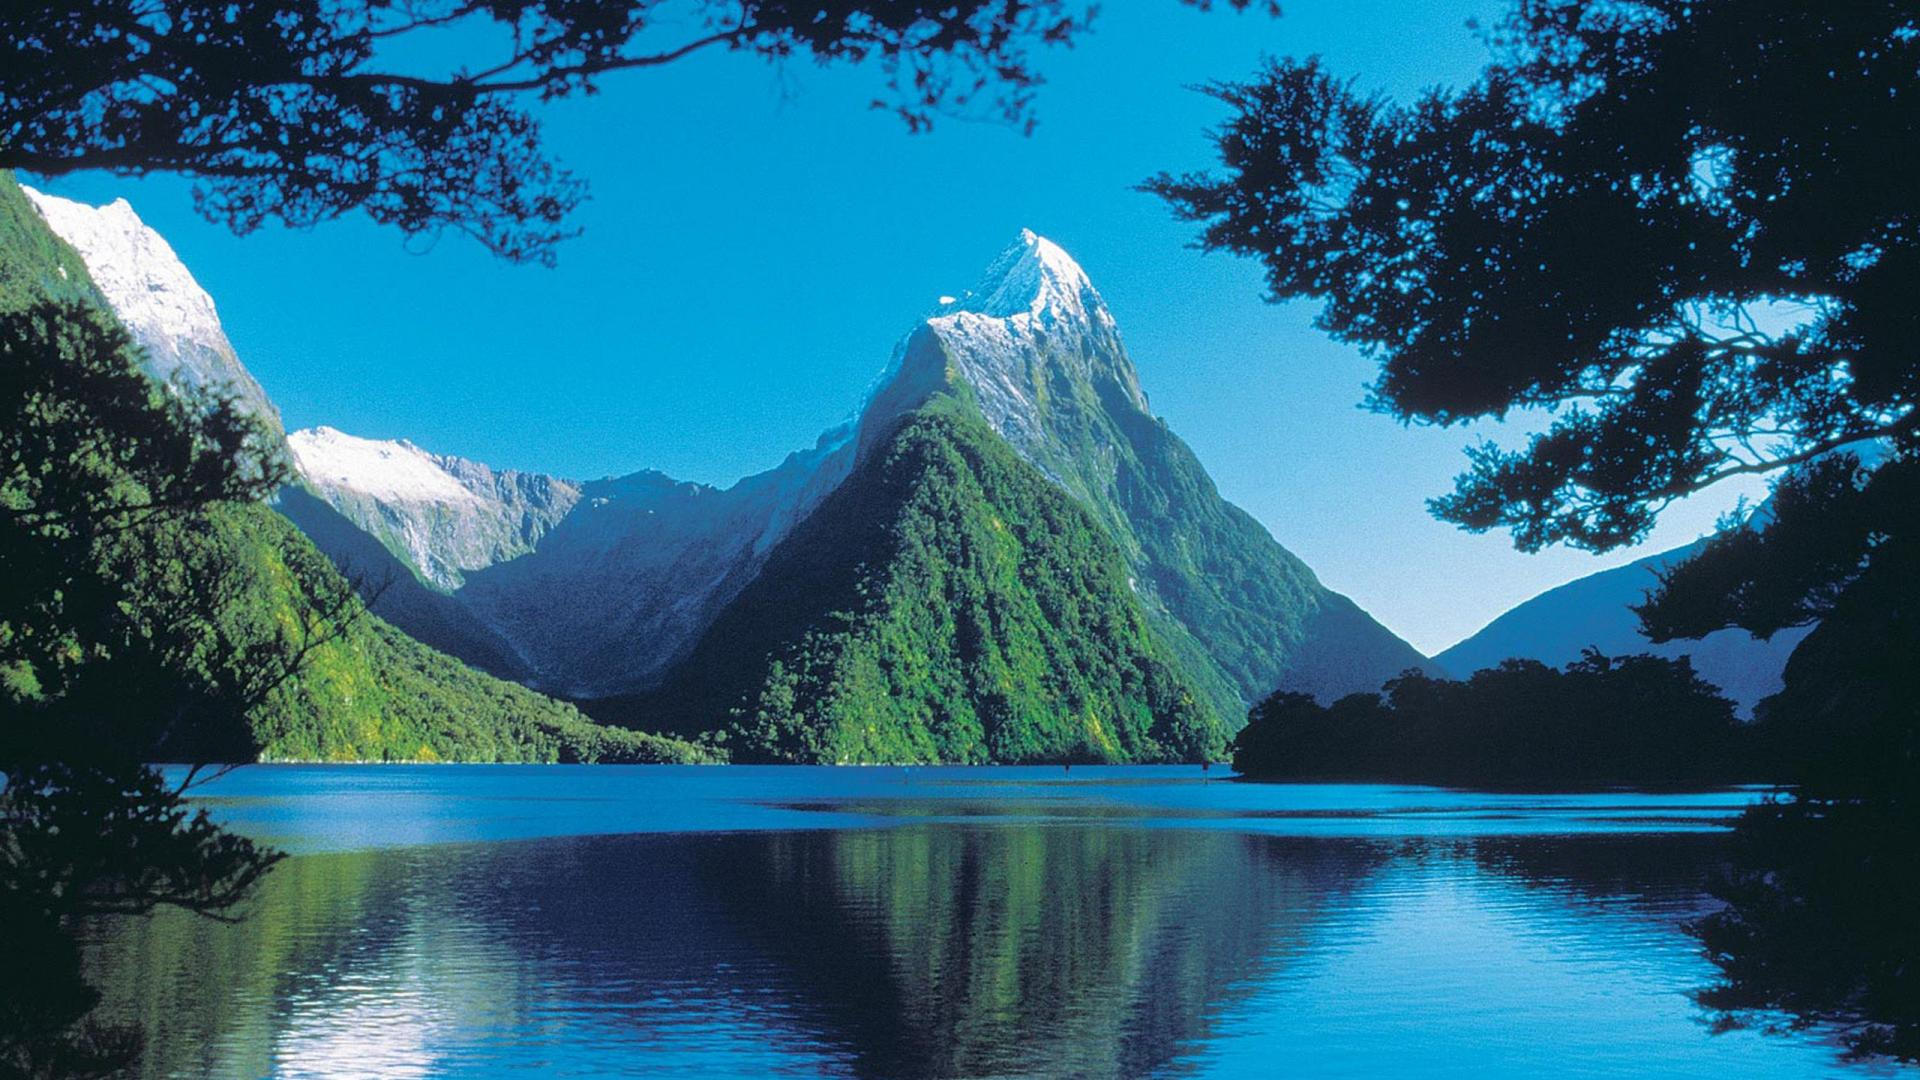 Fiordland National Park Milford Sound